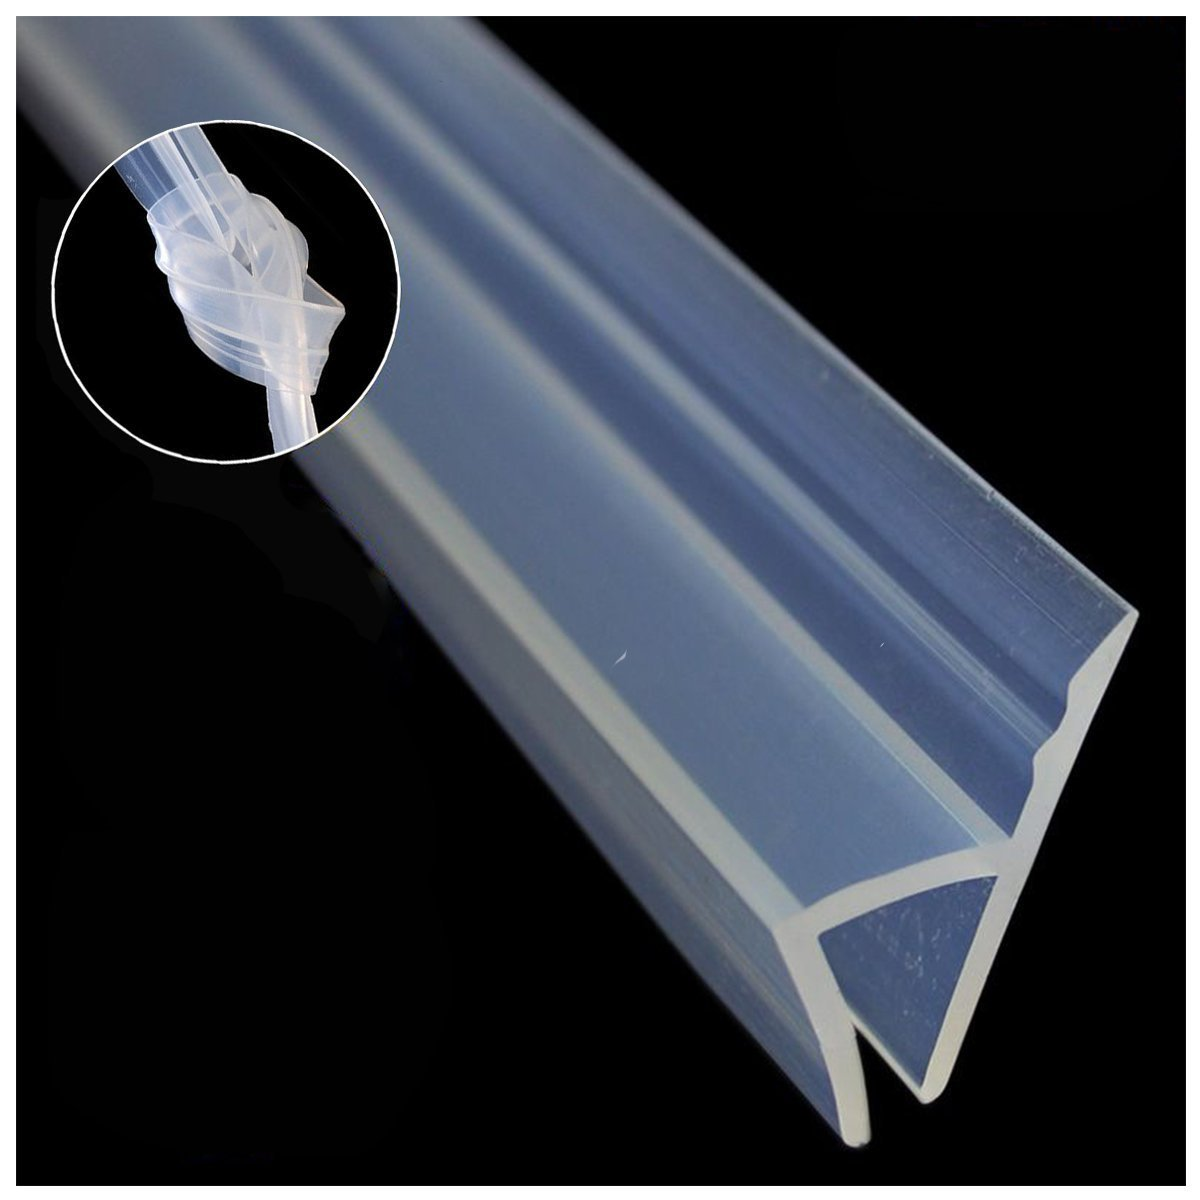 Glass Shower Door Seal Strip(No adhesive Include), 120inch Frameless Weather Stripping Seal Sweep for Door Windows, Flexible with Durable Weatherproof Silicone for 3/8'' Glass (h Shape) by SHOWEET